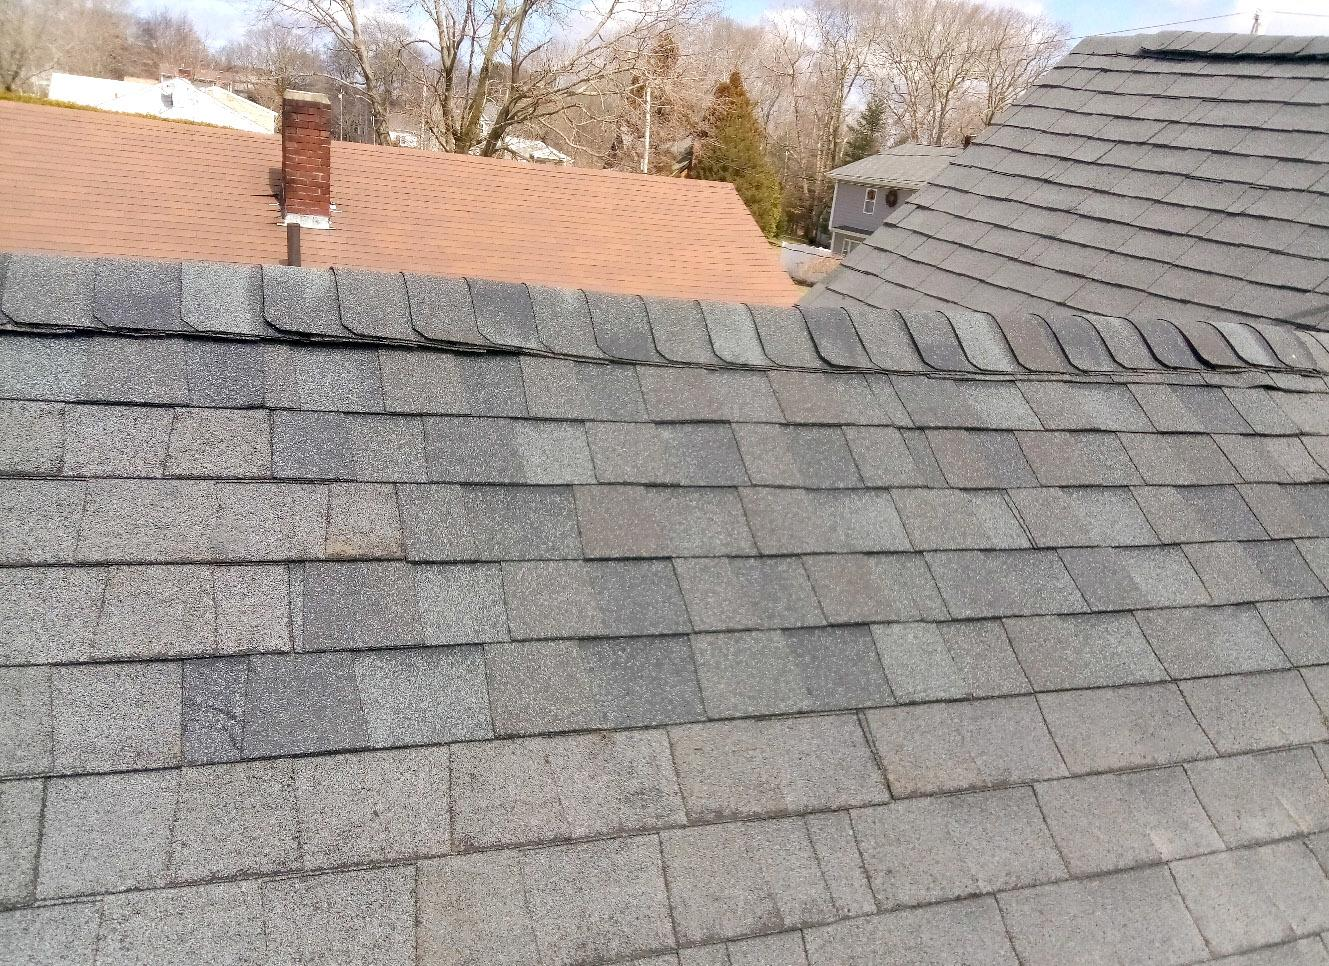 Chimney removal in New Bedford, MA - After Photo